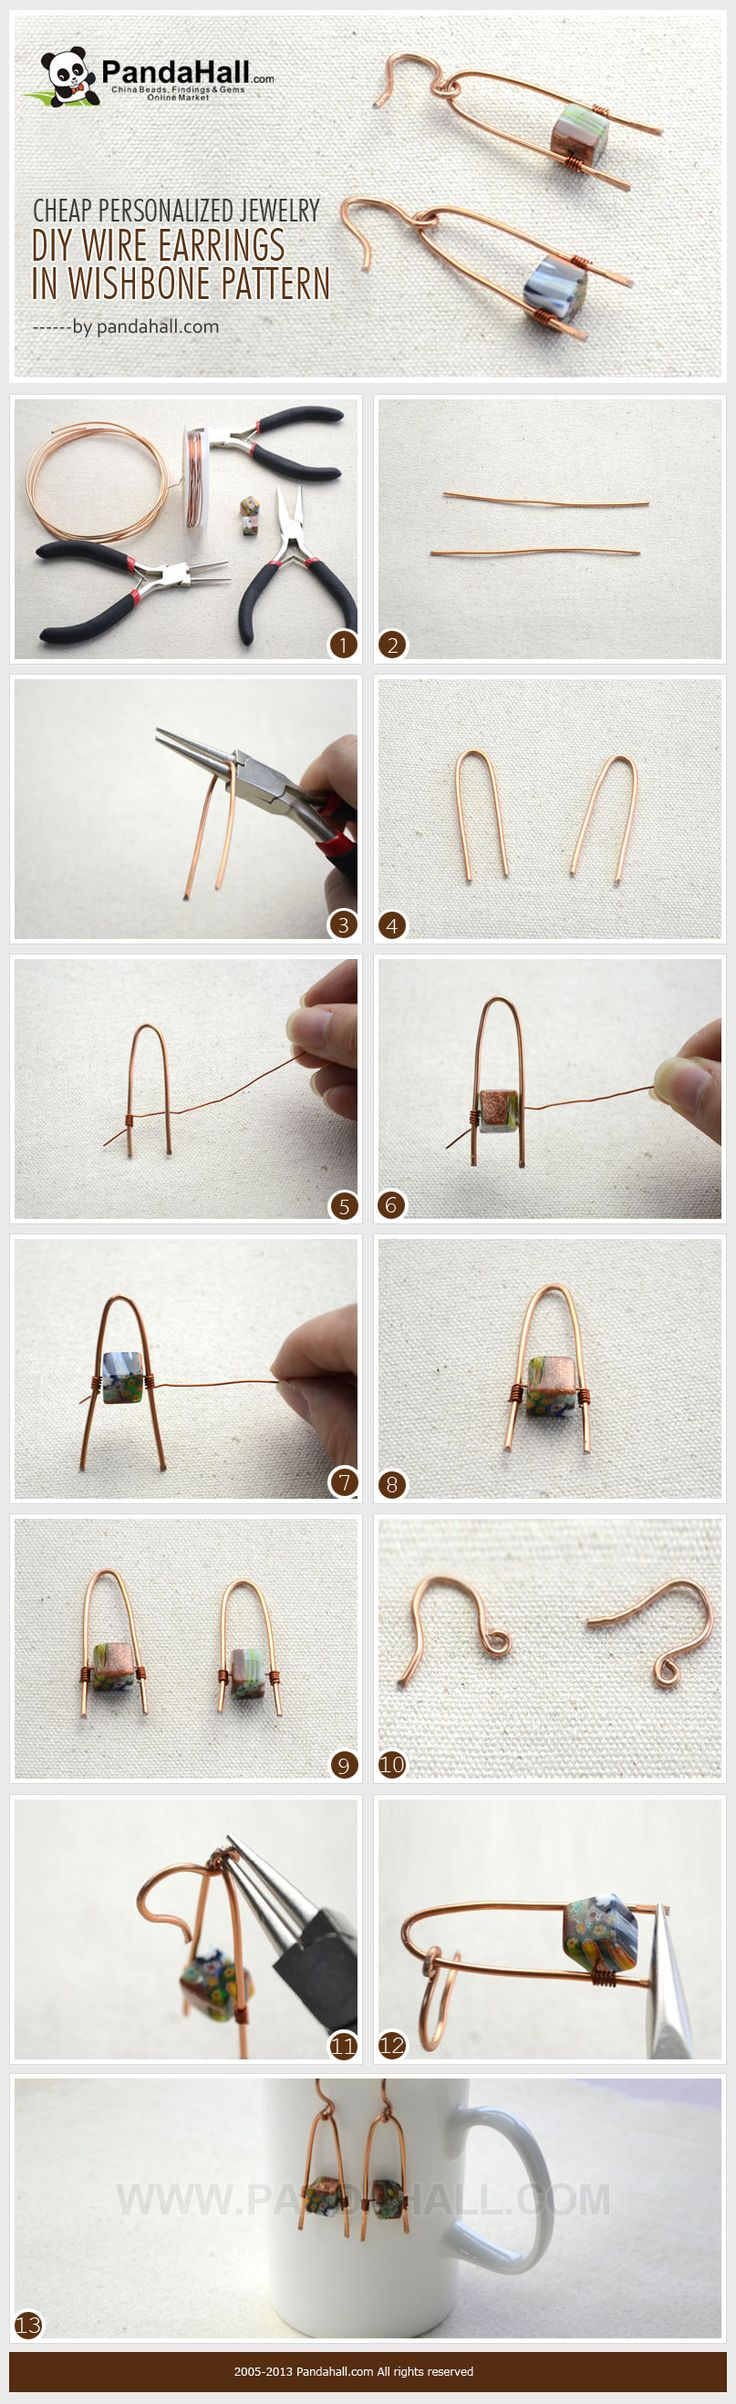 With aluminum wire and stone beads you can make cheap personalized jewelry in a quick and easy way! This tutorial is going to show you how to make DIY wire earrings in a wishbone pattern.